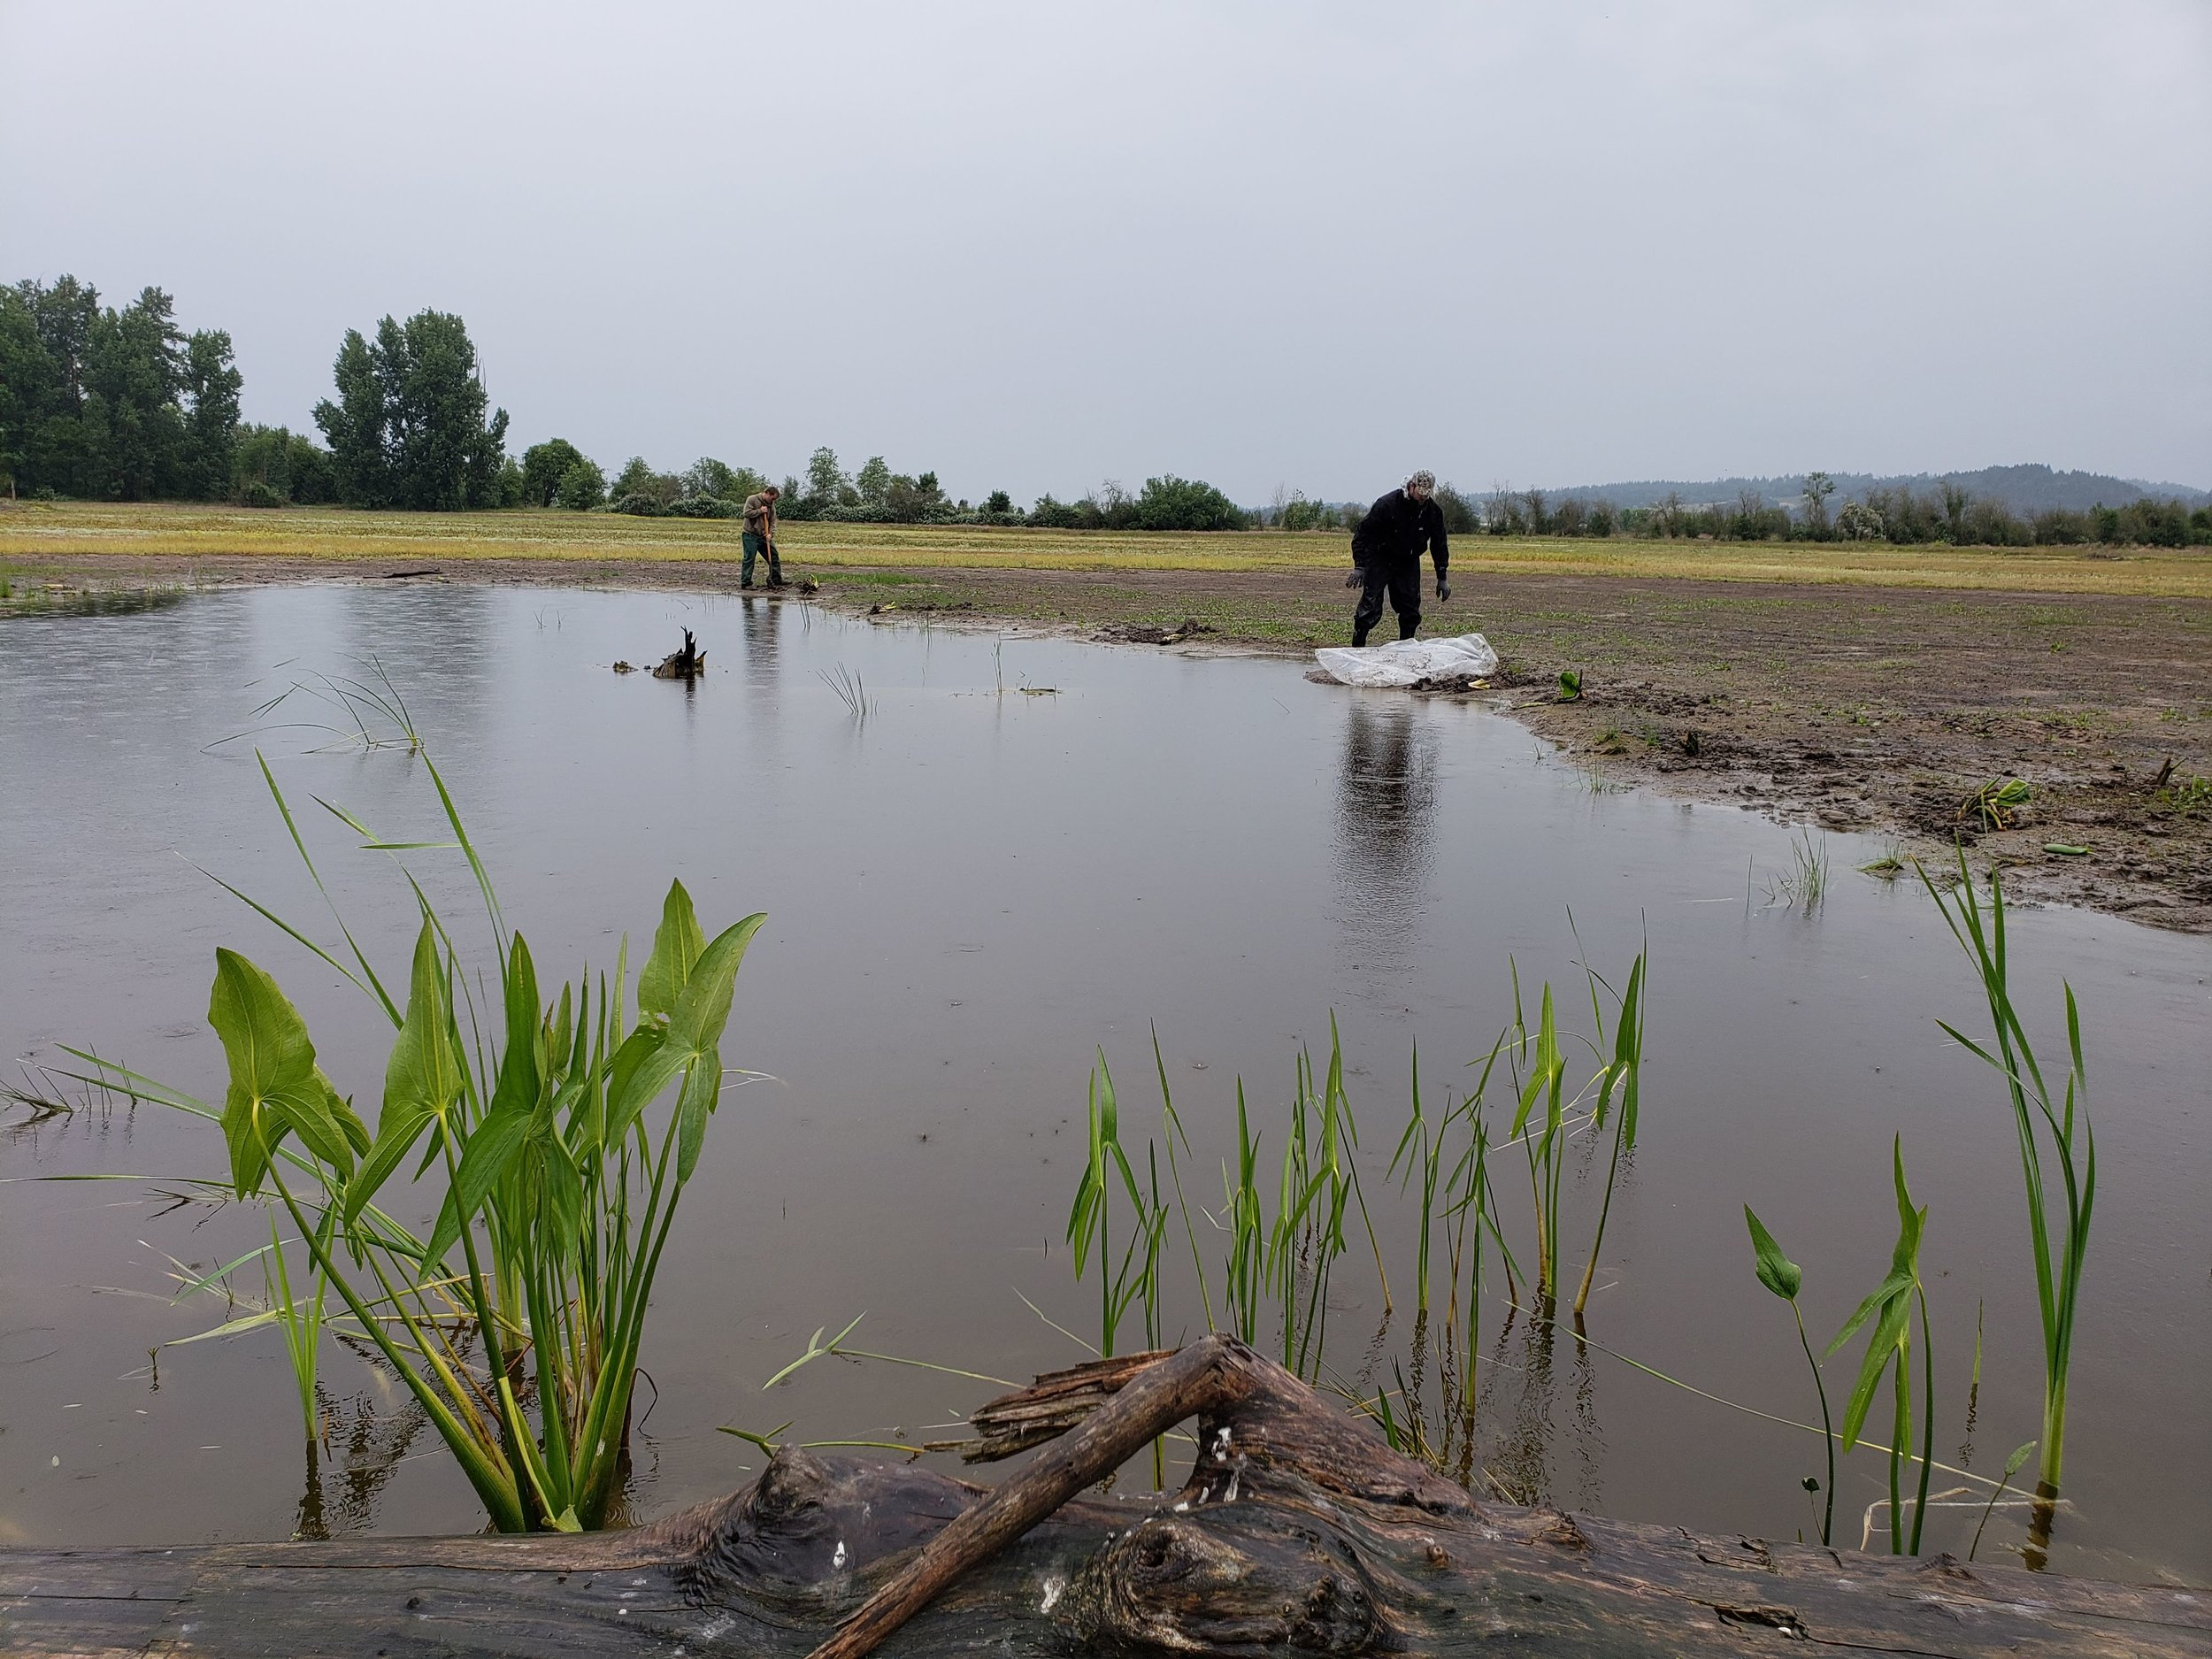 Planting aquatic plants in north pond with Wapato emerging.